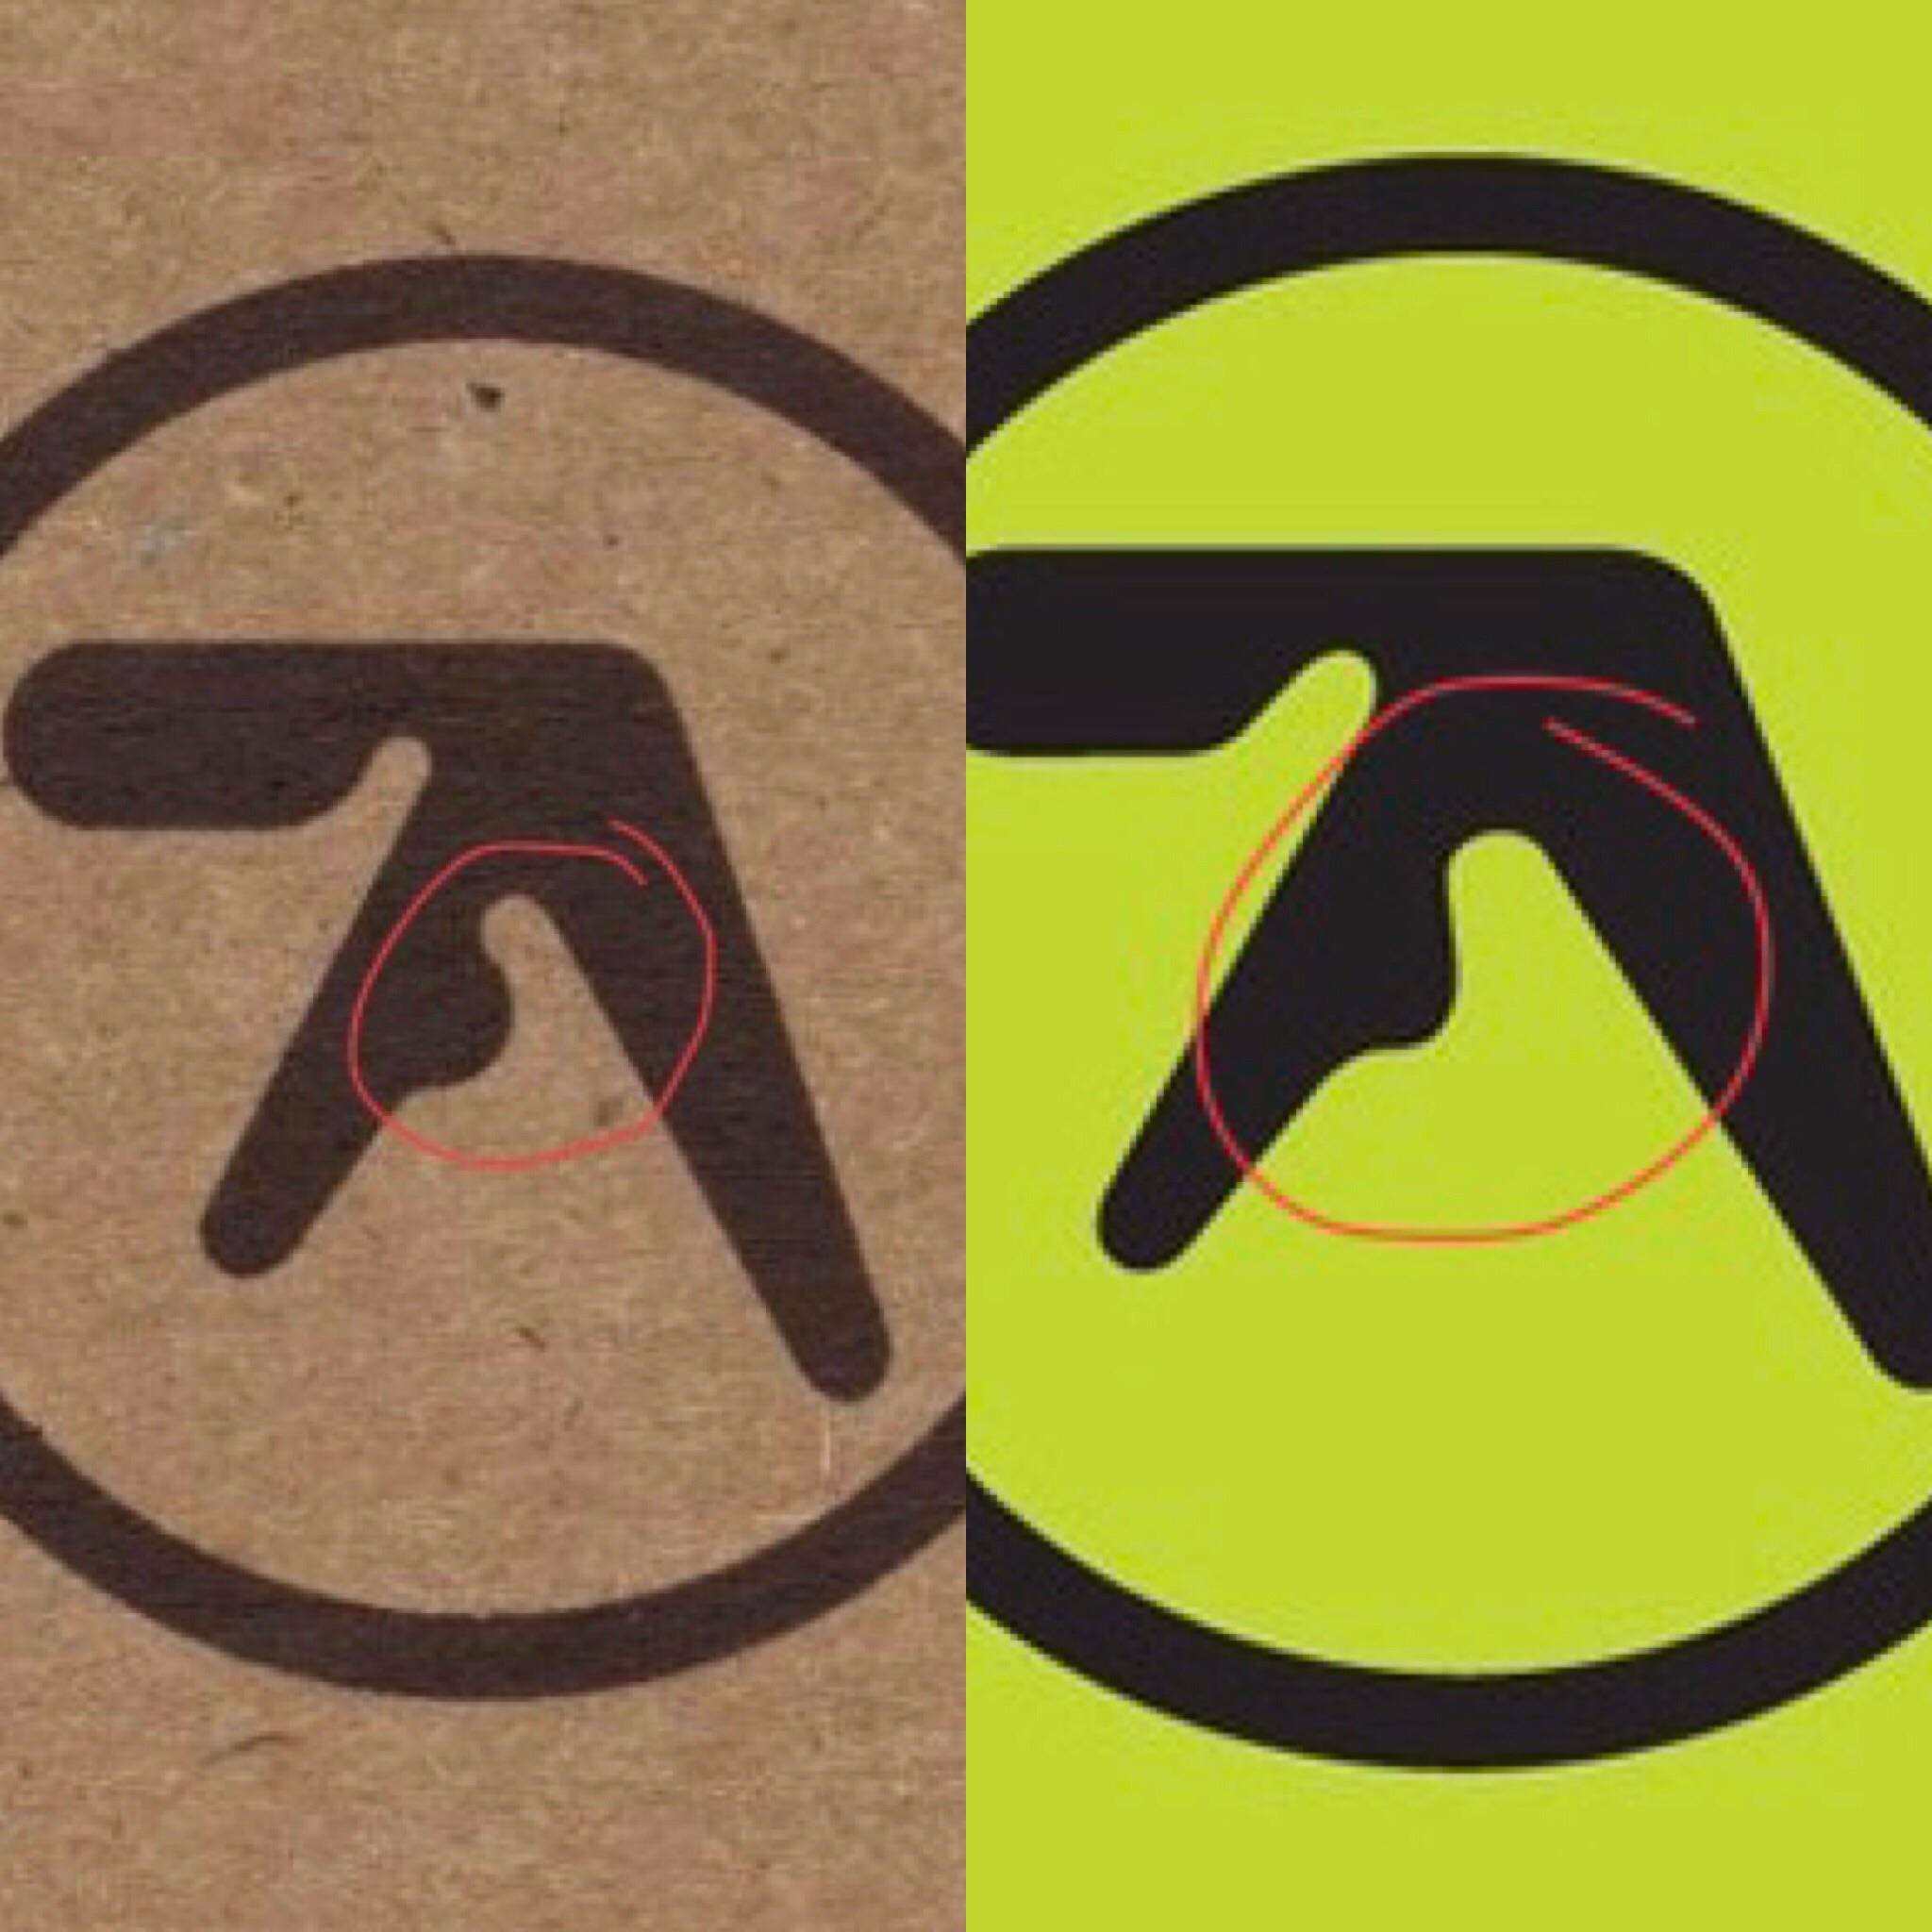 2048x2048 You Guys Ever Notice This Slight Variation In The Aphex Twin Logo